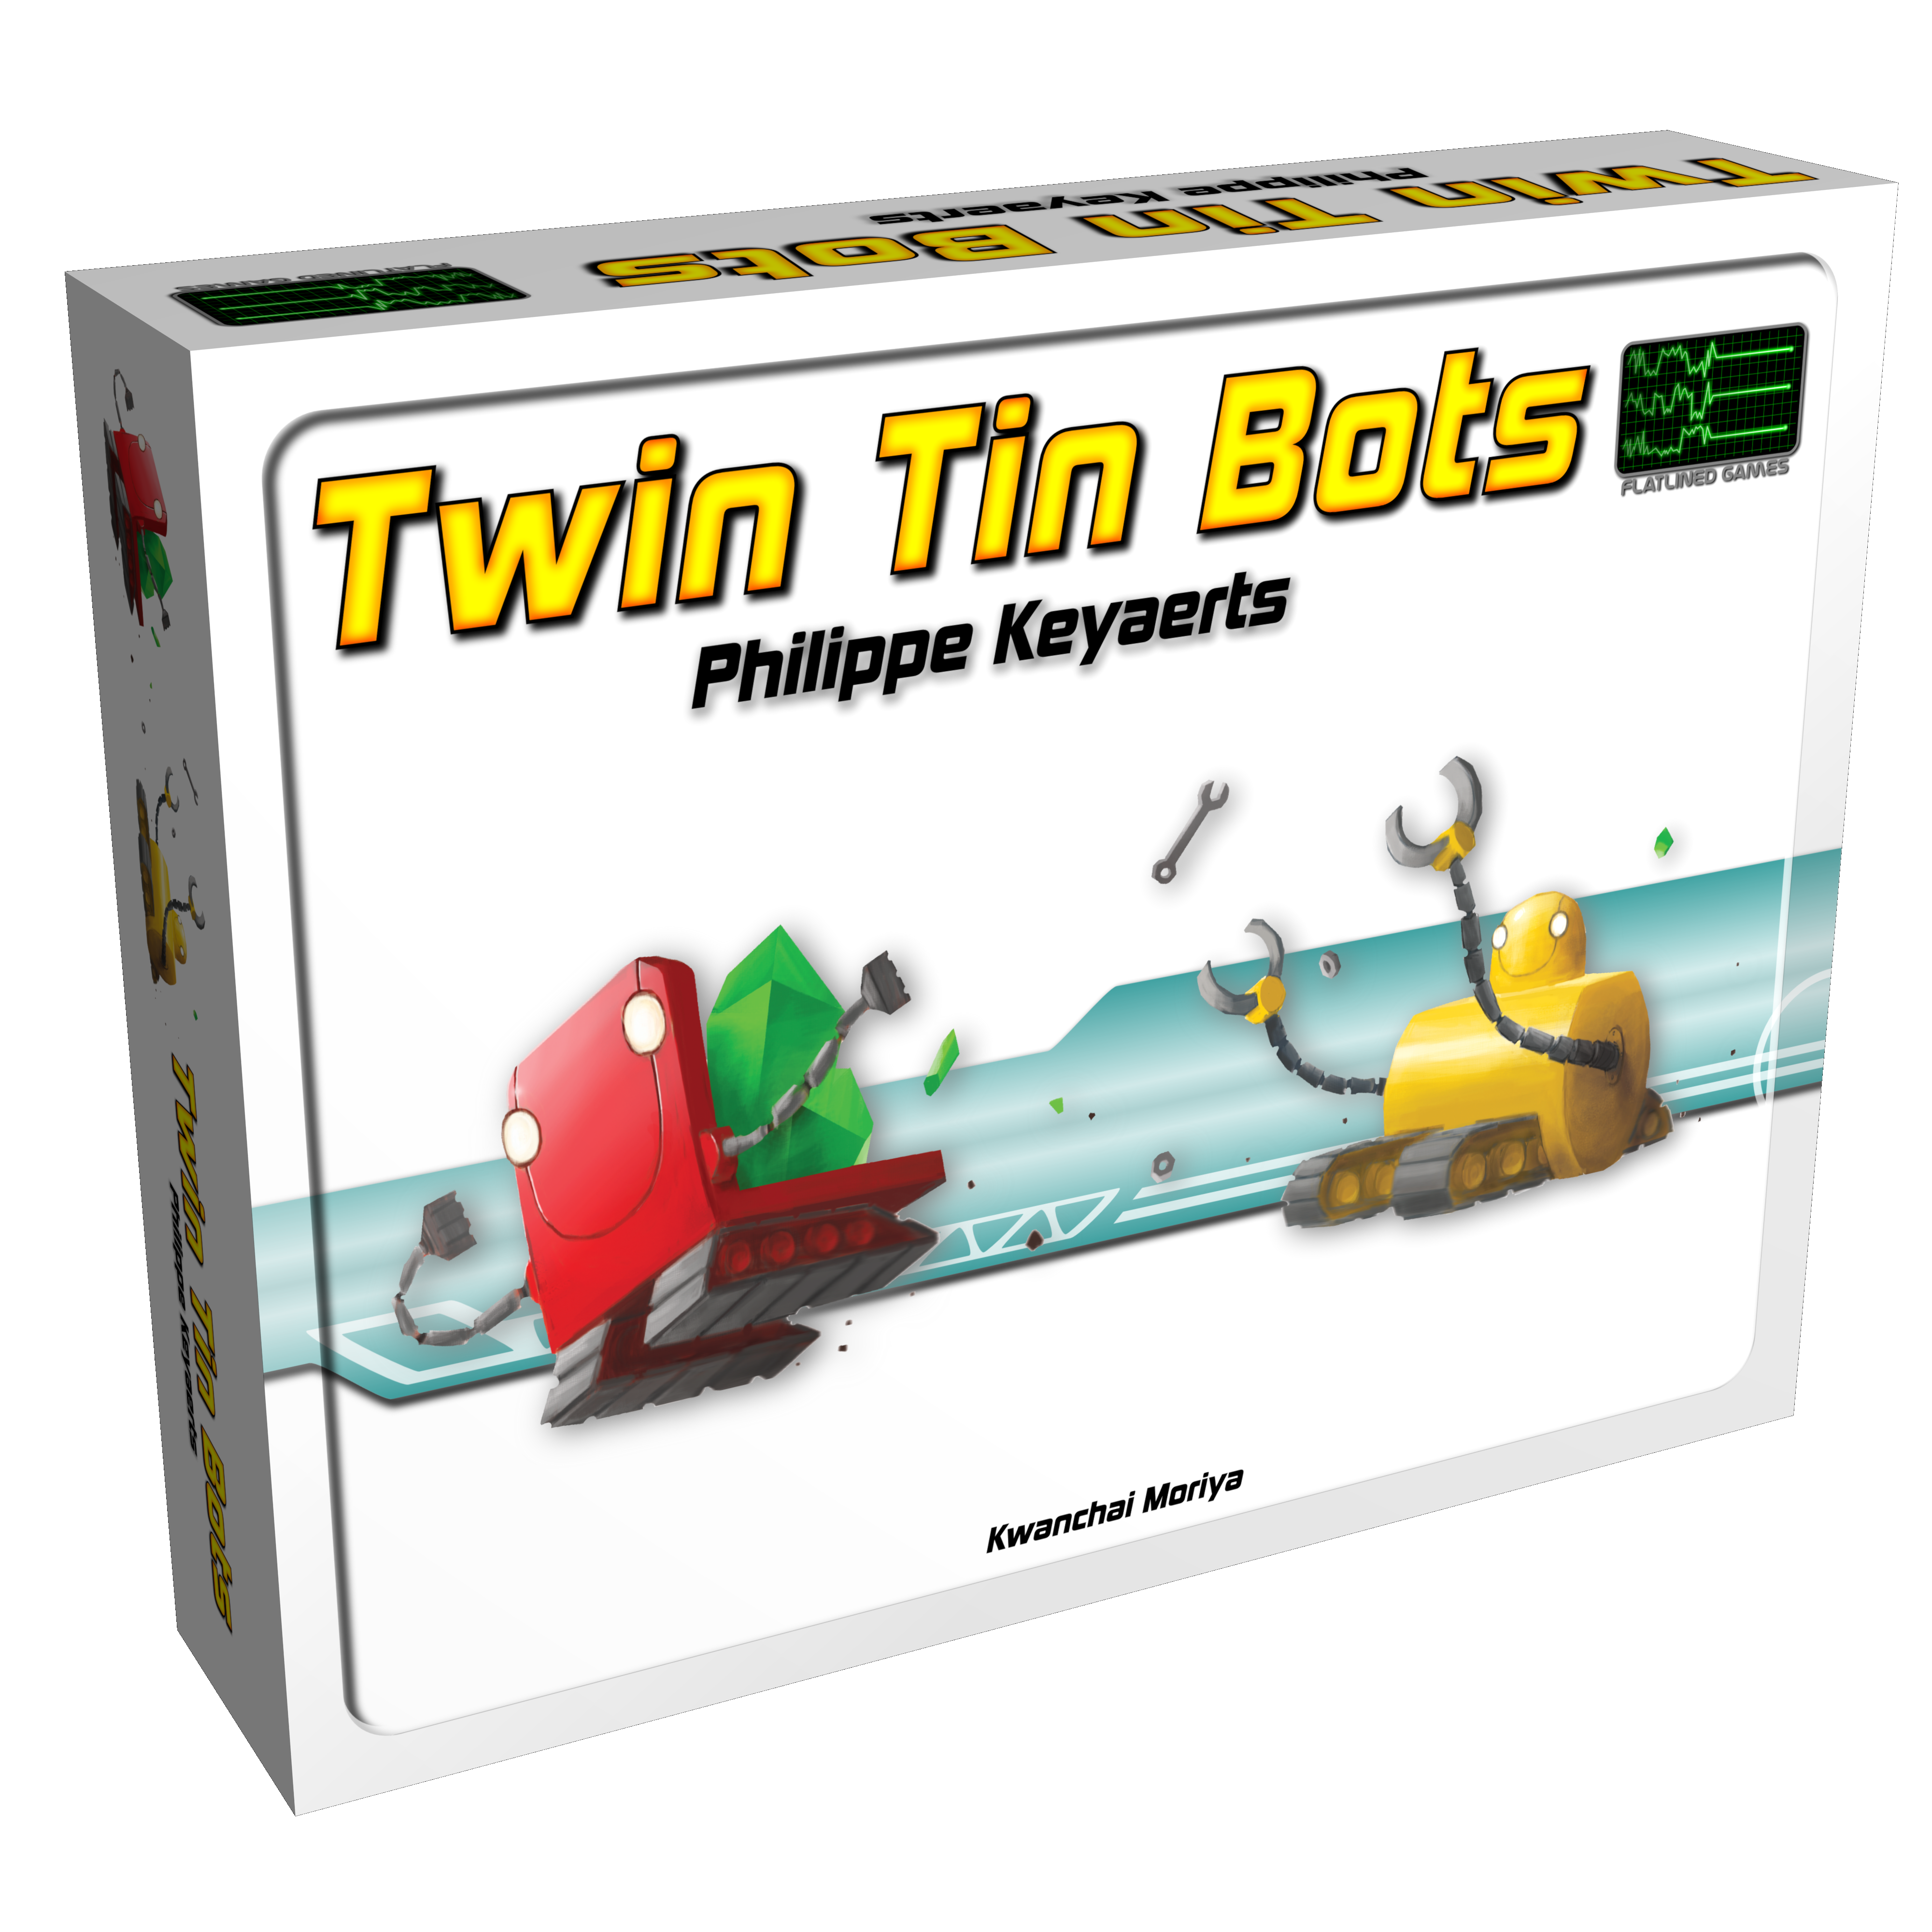 Twin Tin Bots : Le Making Of